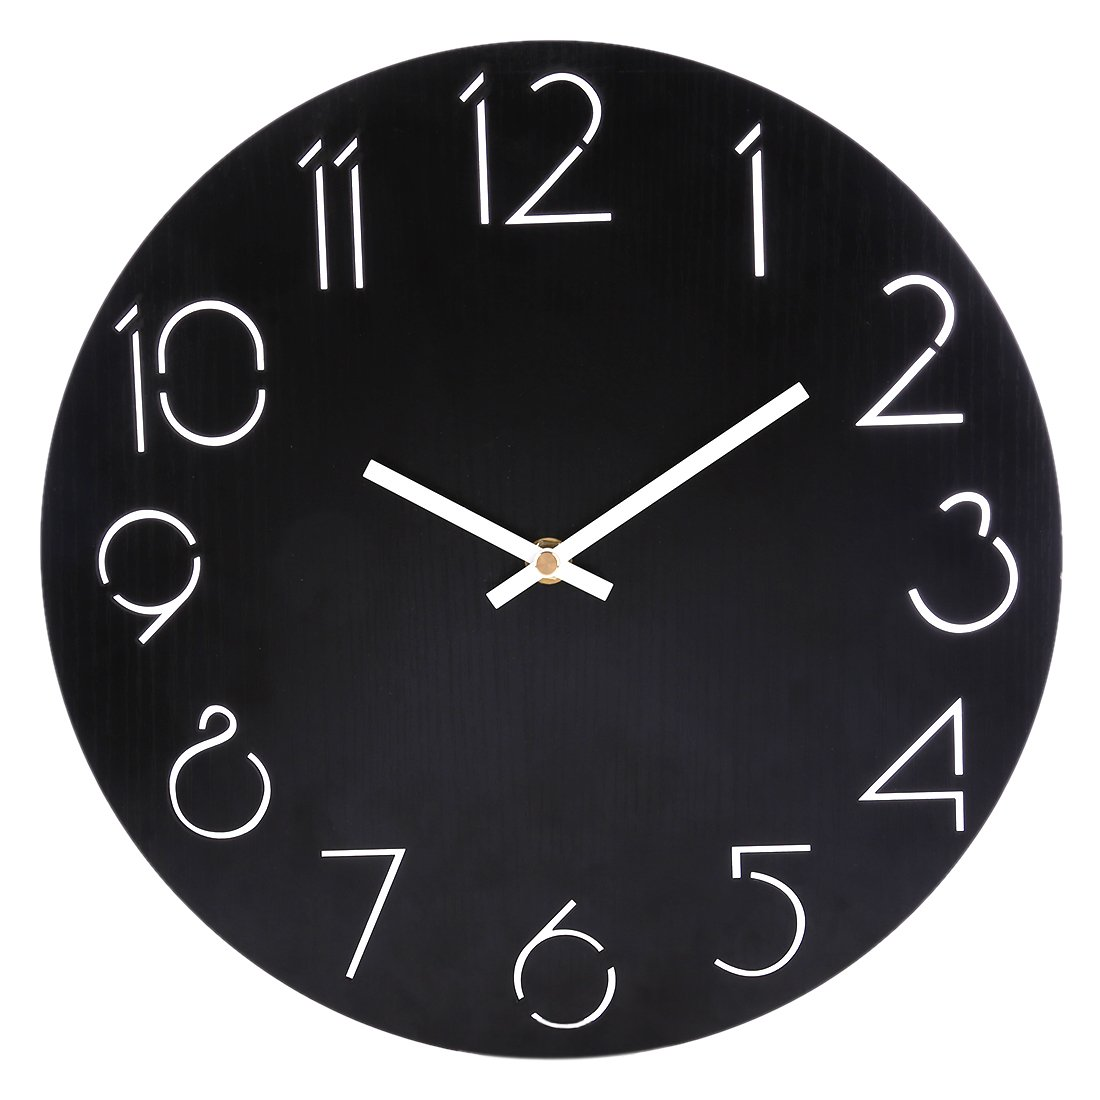 Simple Country Style MDF Round Wall Clock Bedroom Living Room Brief Quarz Mute Clock Wall Decor Black